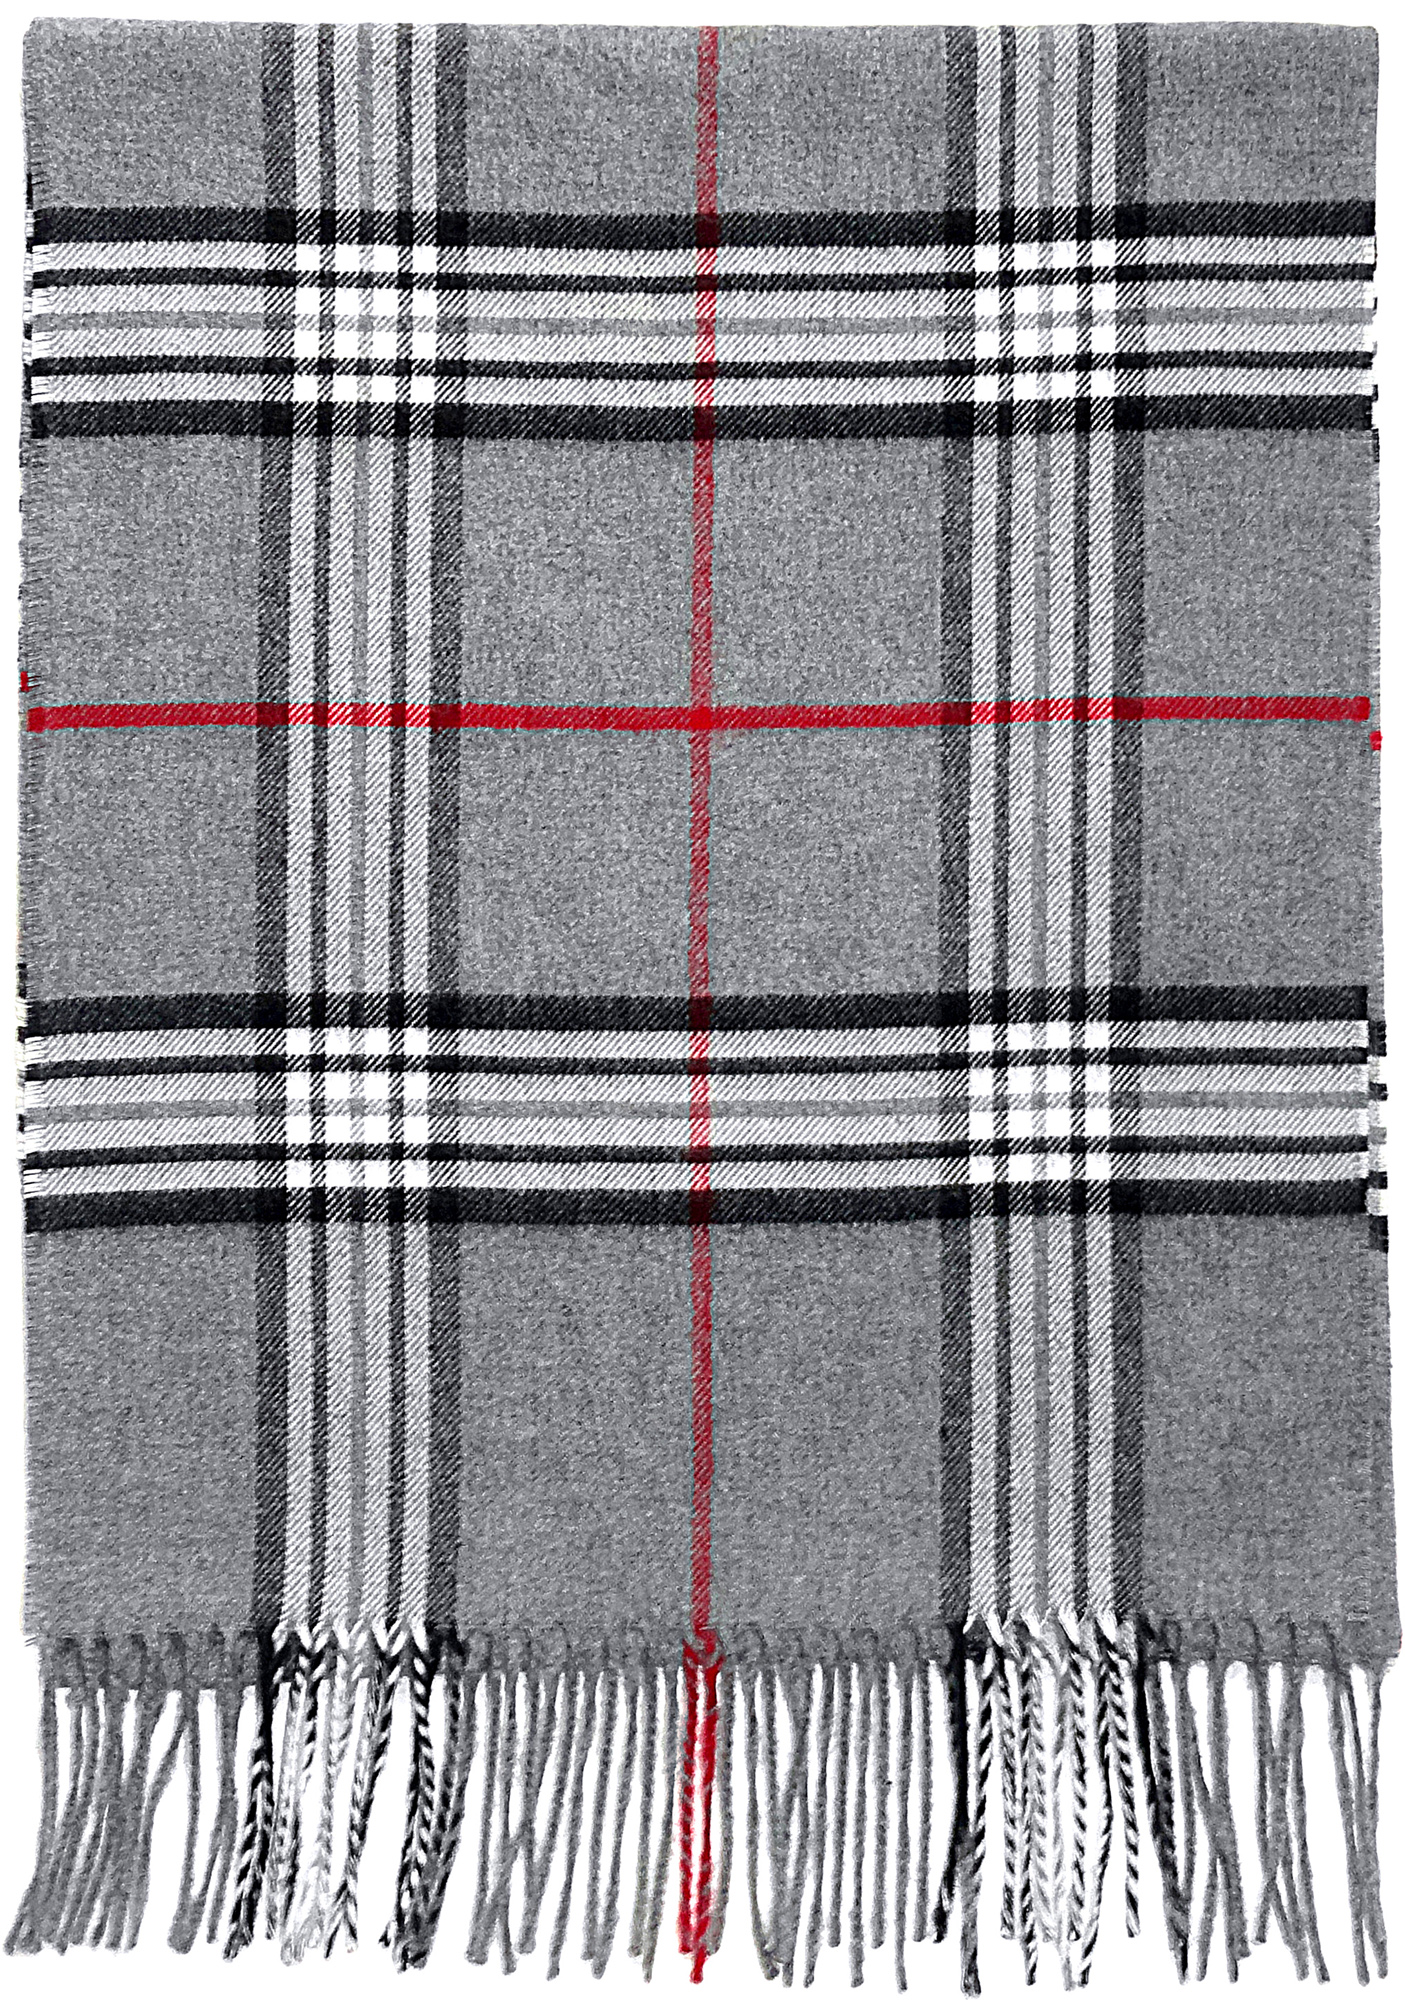 Fraas Plaid in Grey- $35.00 Cashmink, Made in Germany 771899115990